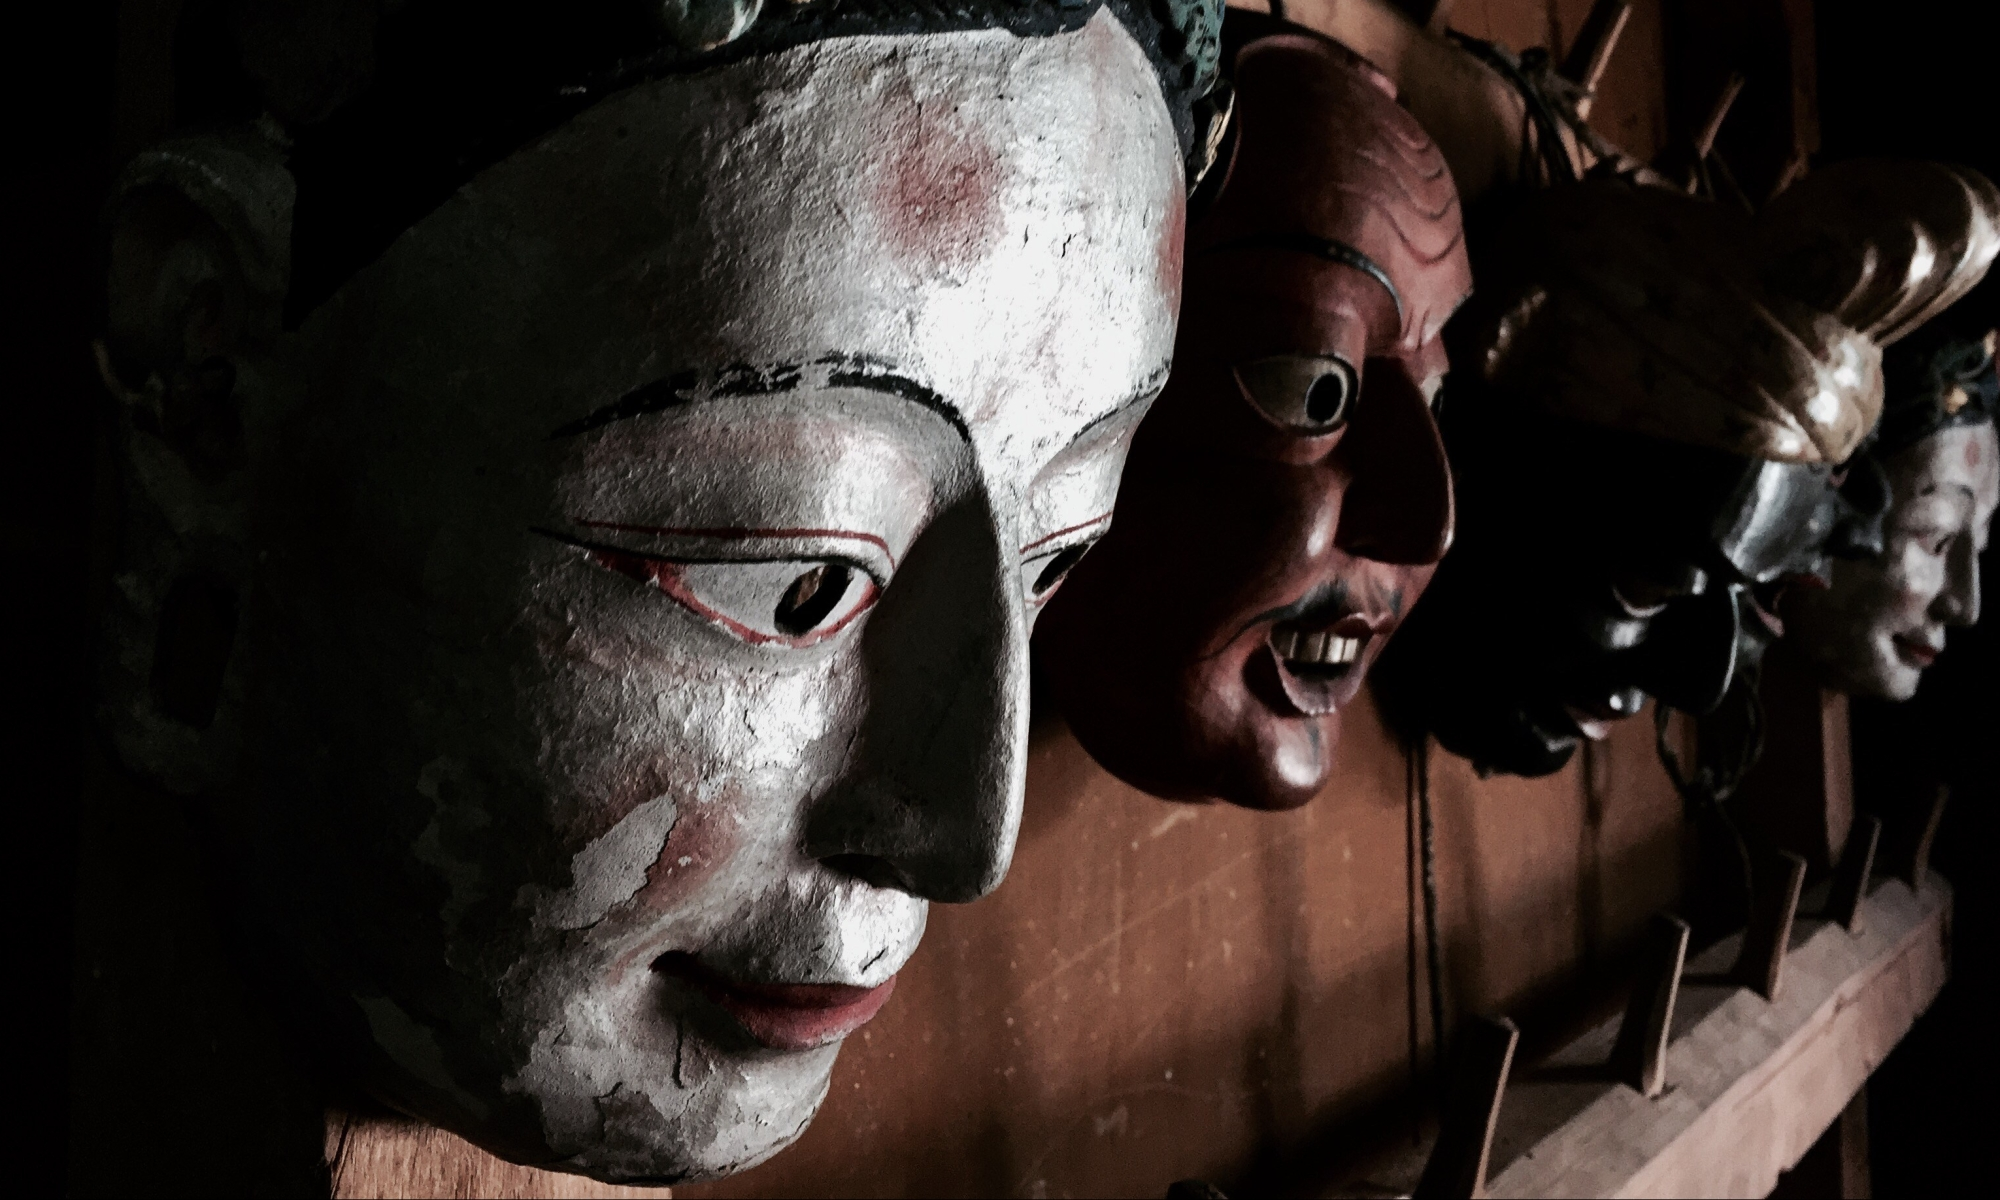 traditionelle masken im museum in ugyen choeling, bumthang, bhutan